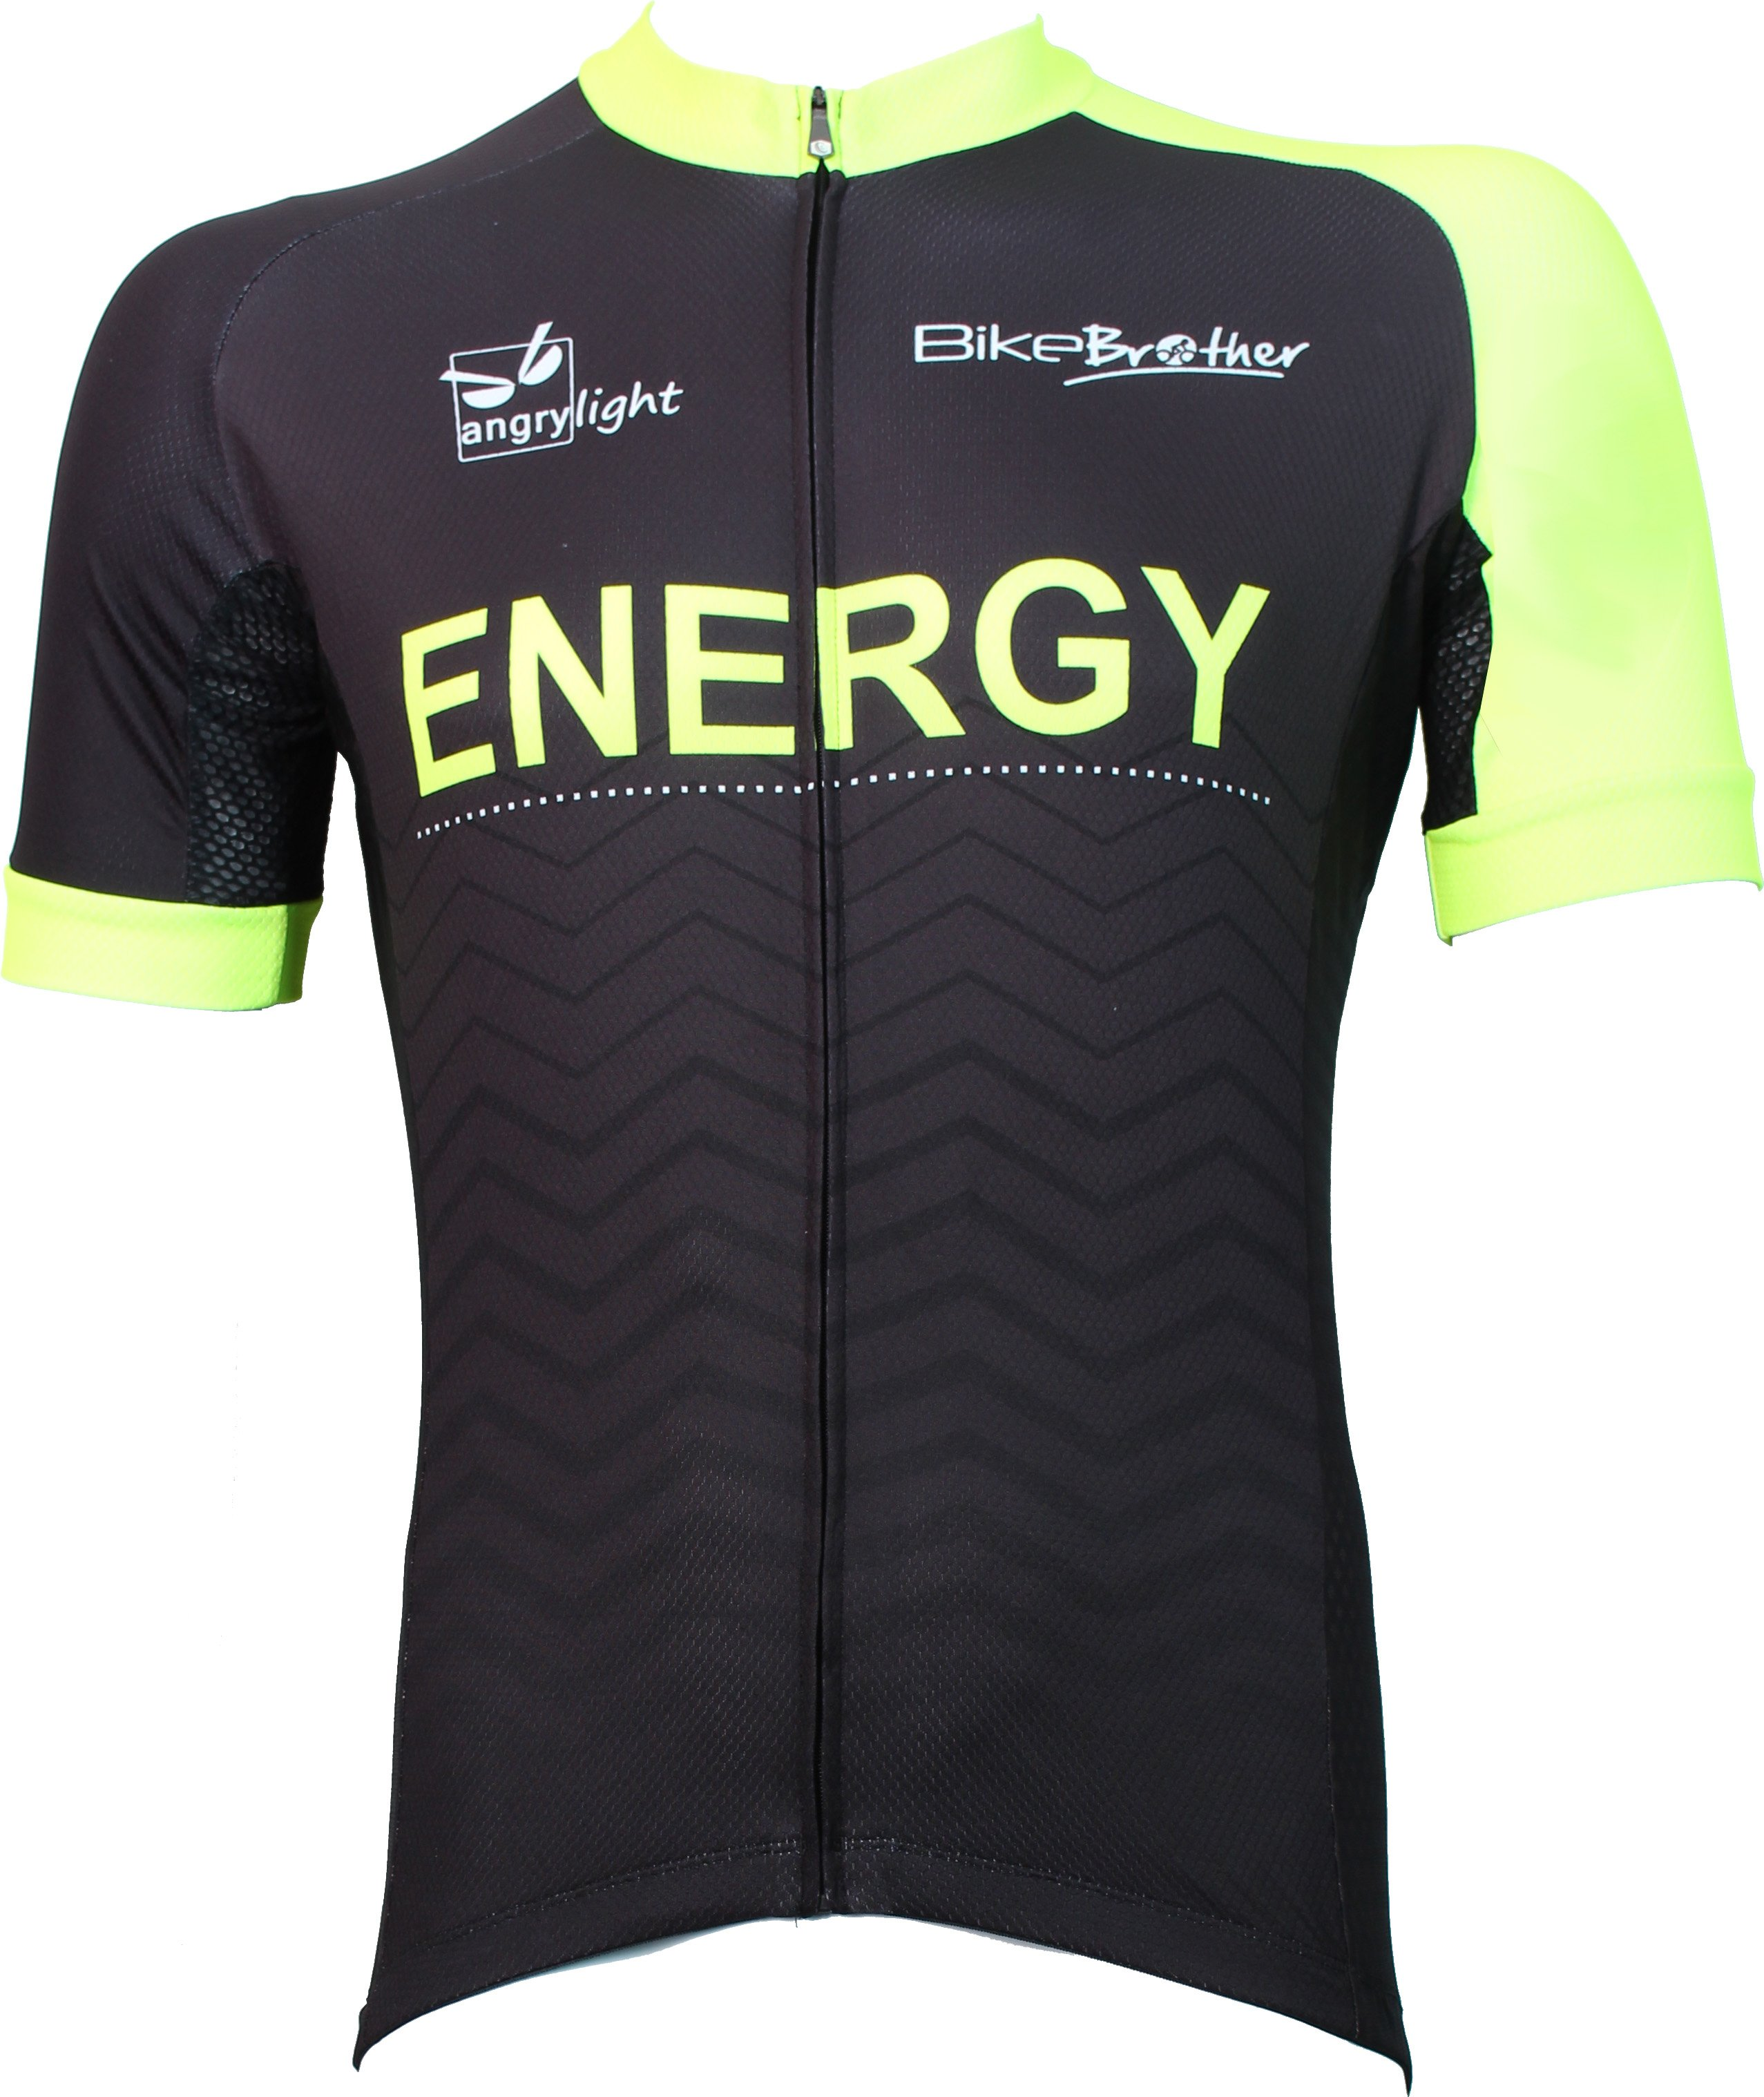 BikeBrother Energy jersey